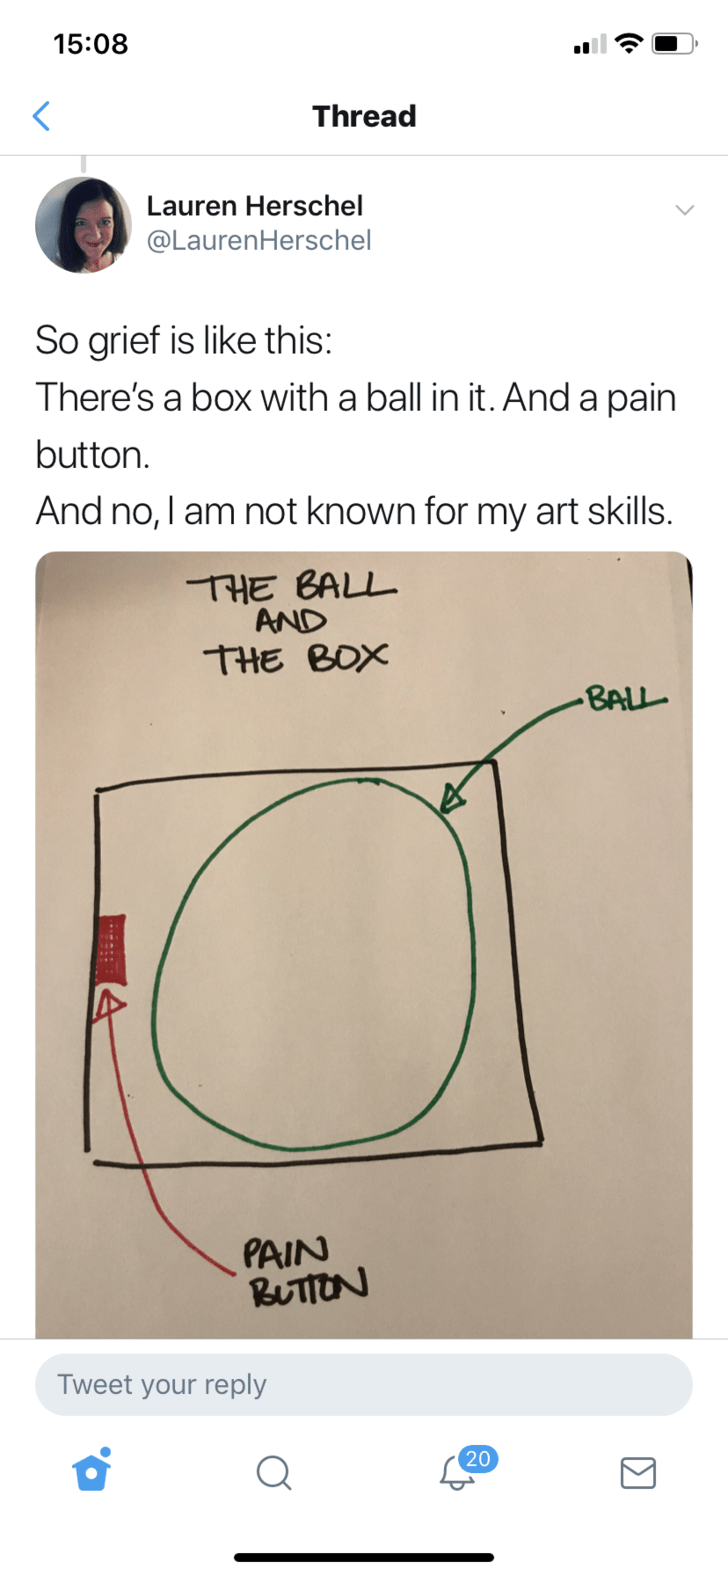 the ball and the box - Text - 15:08 Thread Lauren Herschel @LaurenHerschel So grief is like this: There's a box with a ball in it. And a pain button. And no, I am not known for my art skills. THE BALL AND THE BOX -BALL PAIN RUTTON Tweet your reply 20 Σ